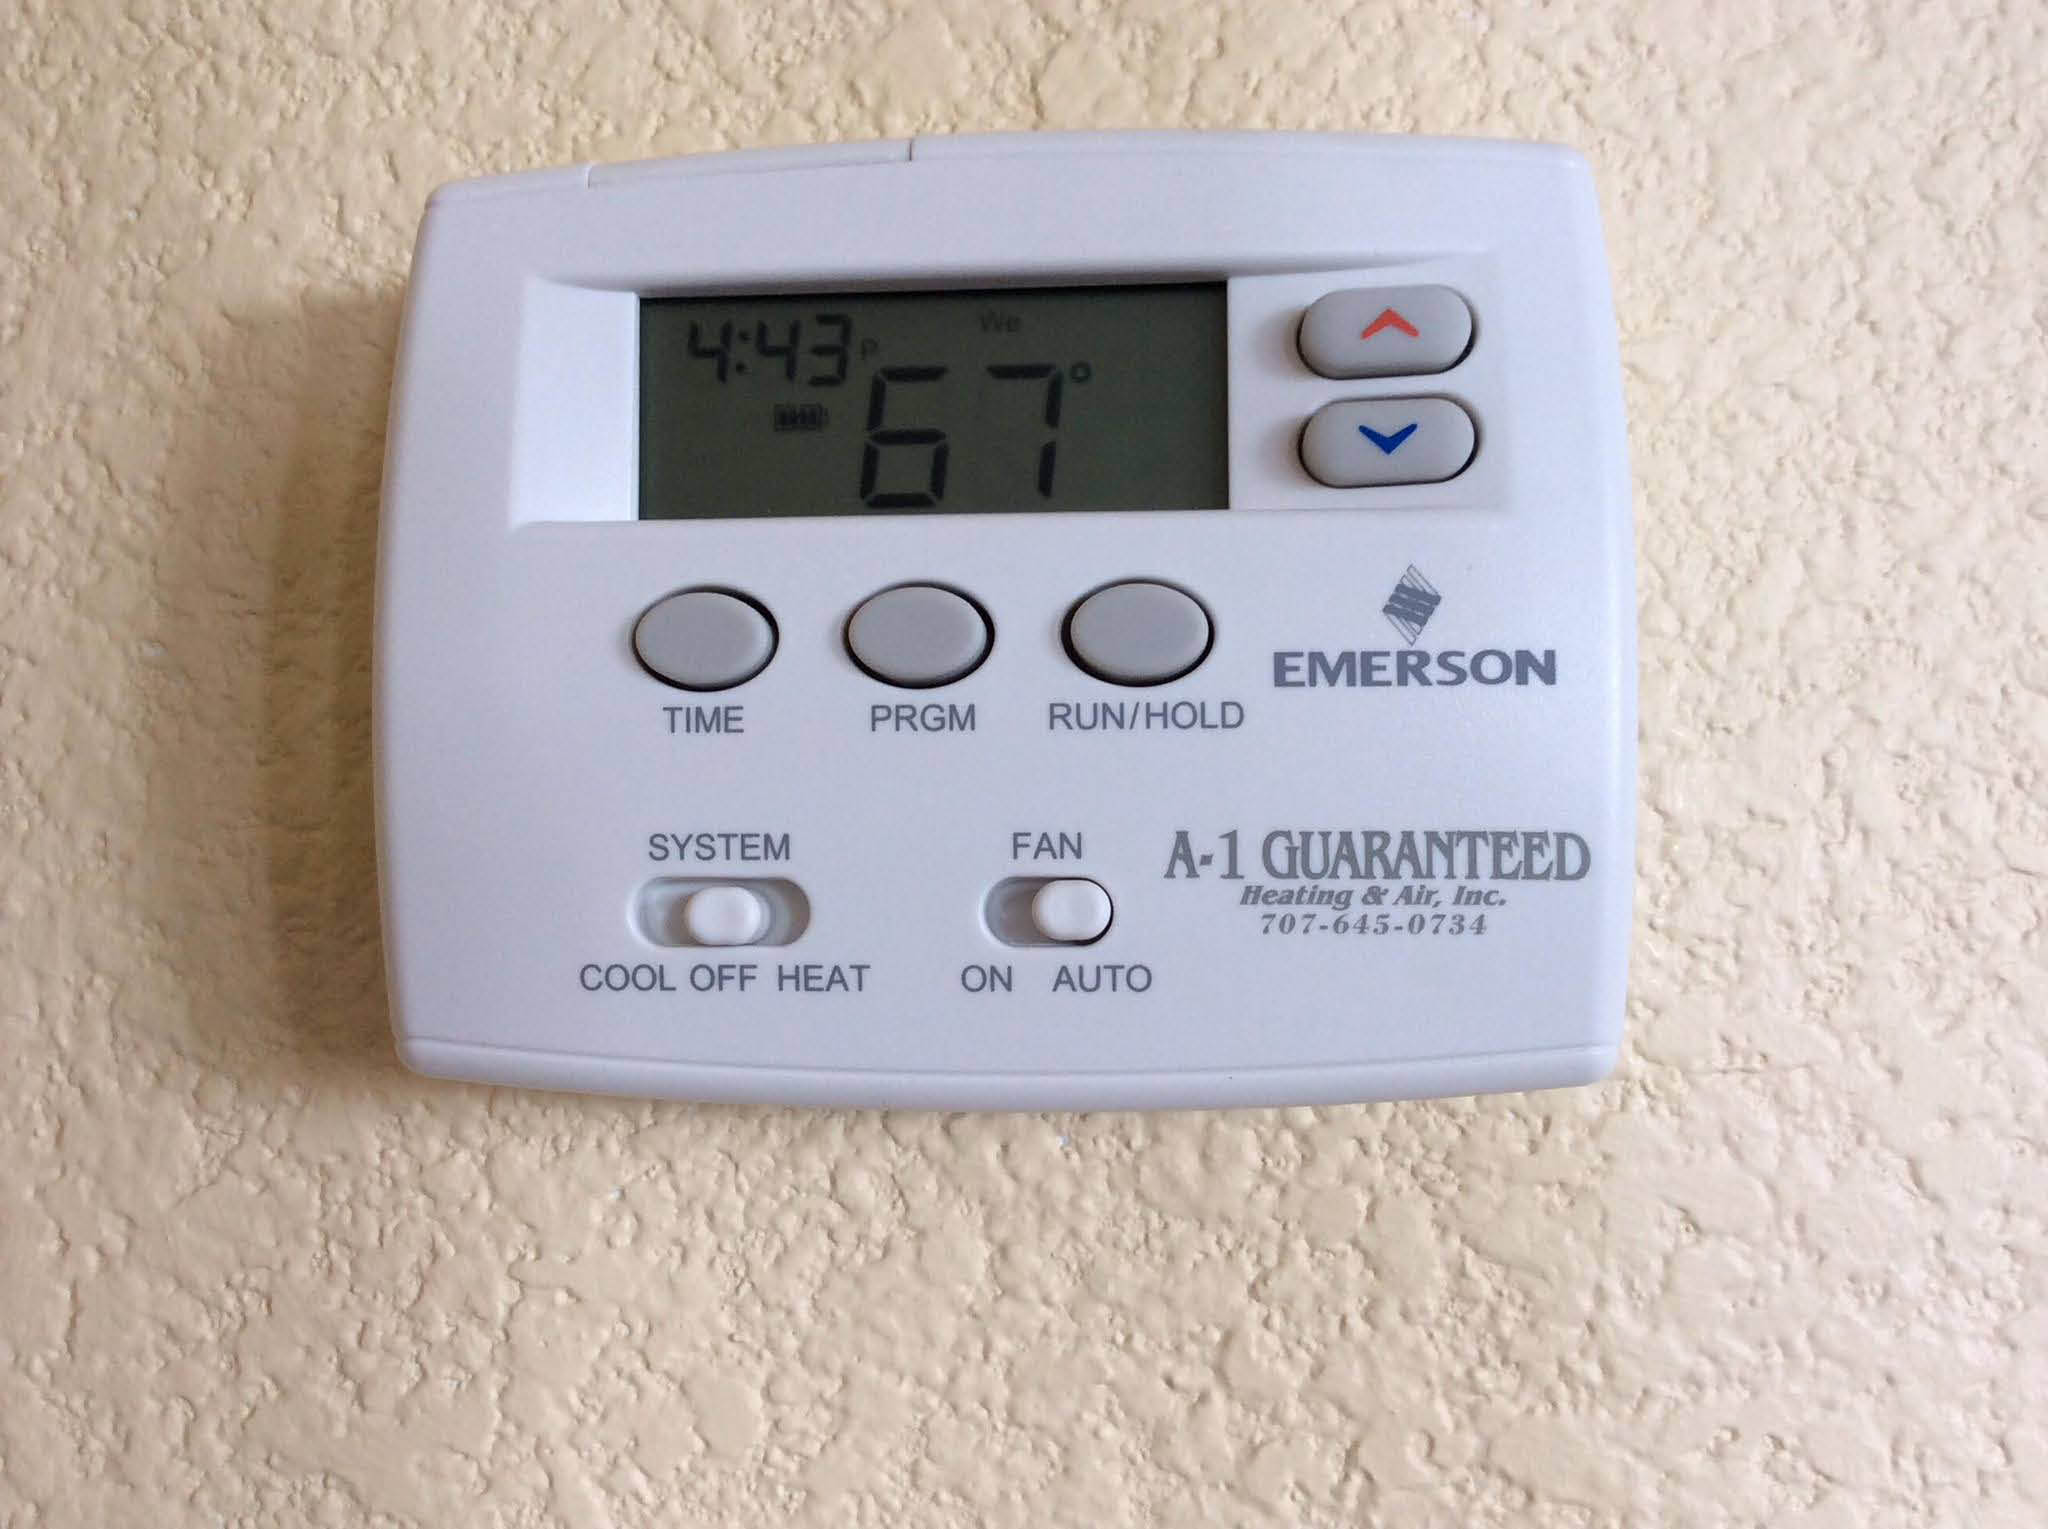 Energy efficient thermostat by Emerson